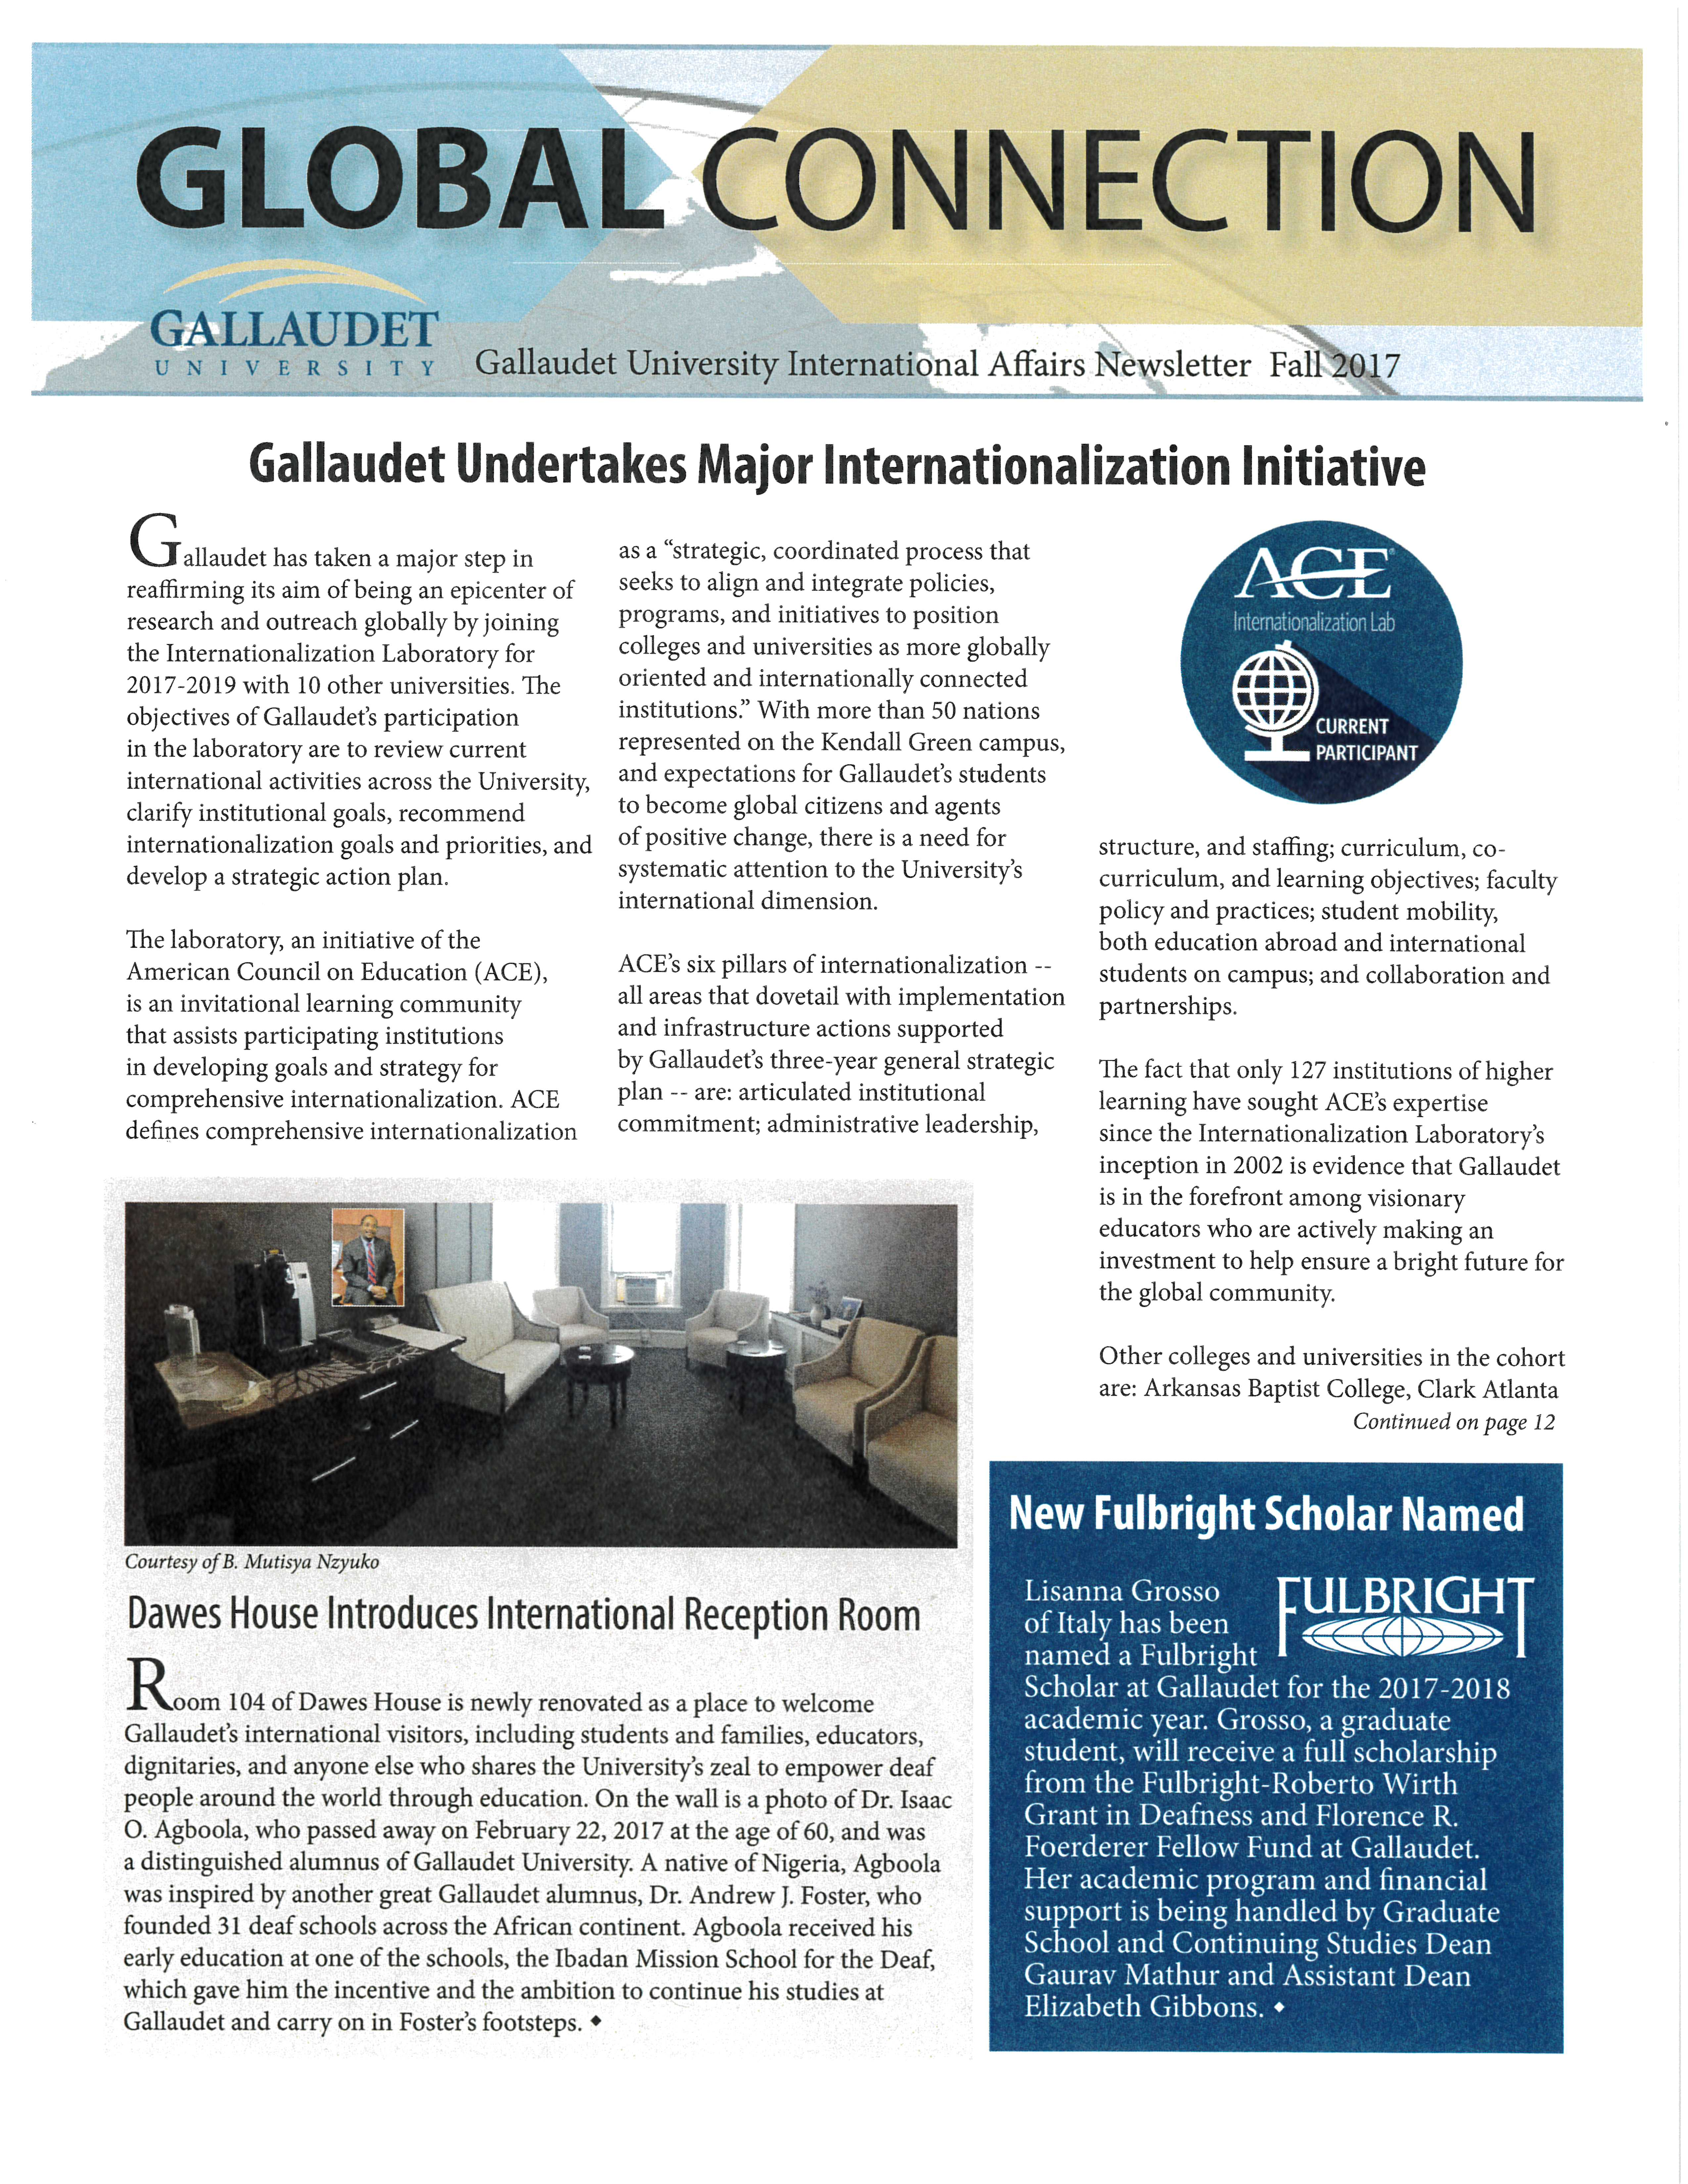 Image of 2017 Fall Global Connection Newsletter